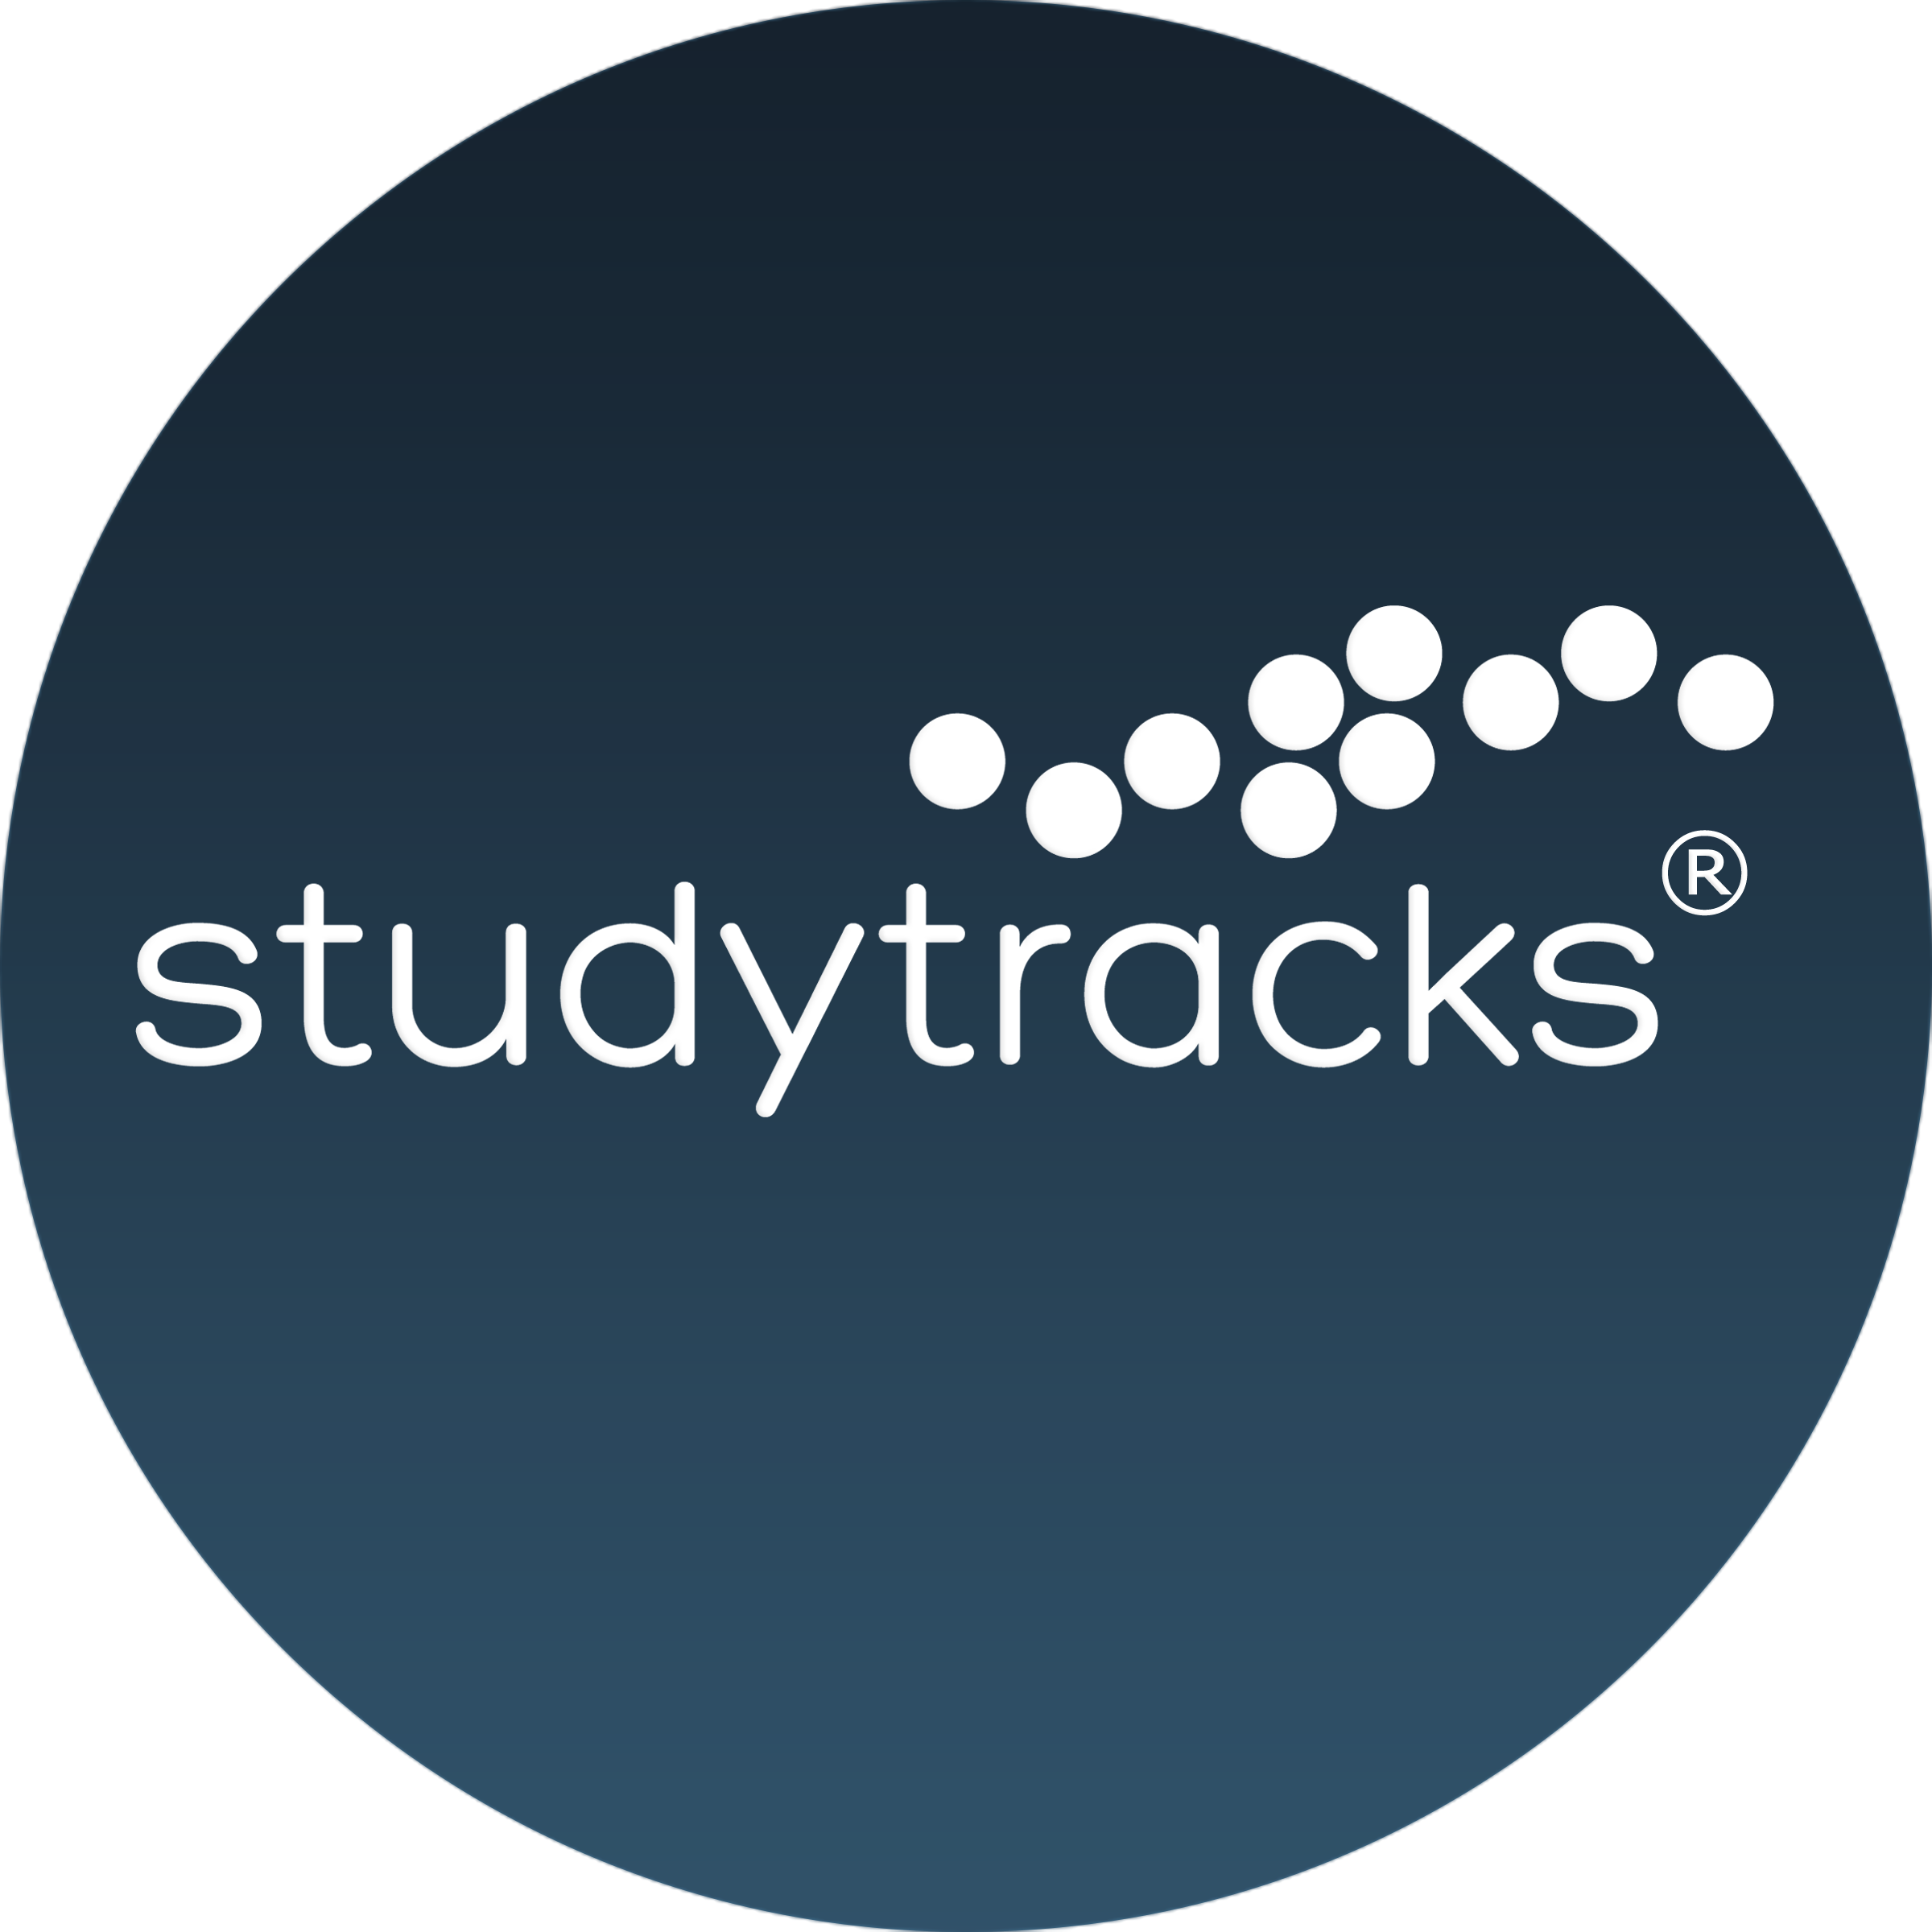 LOGO_STUDYTRACKS